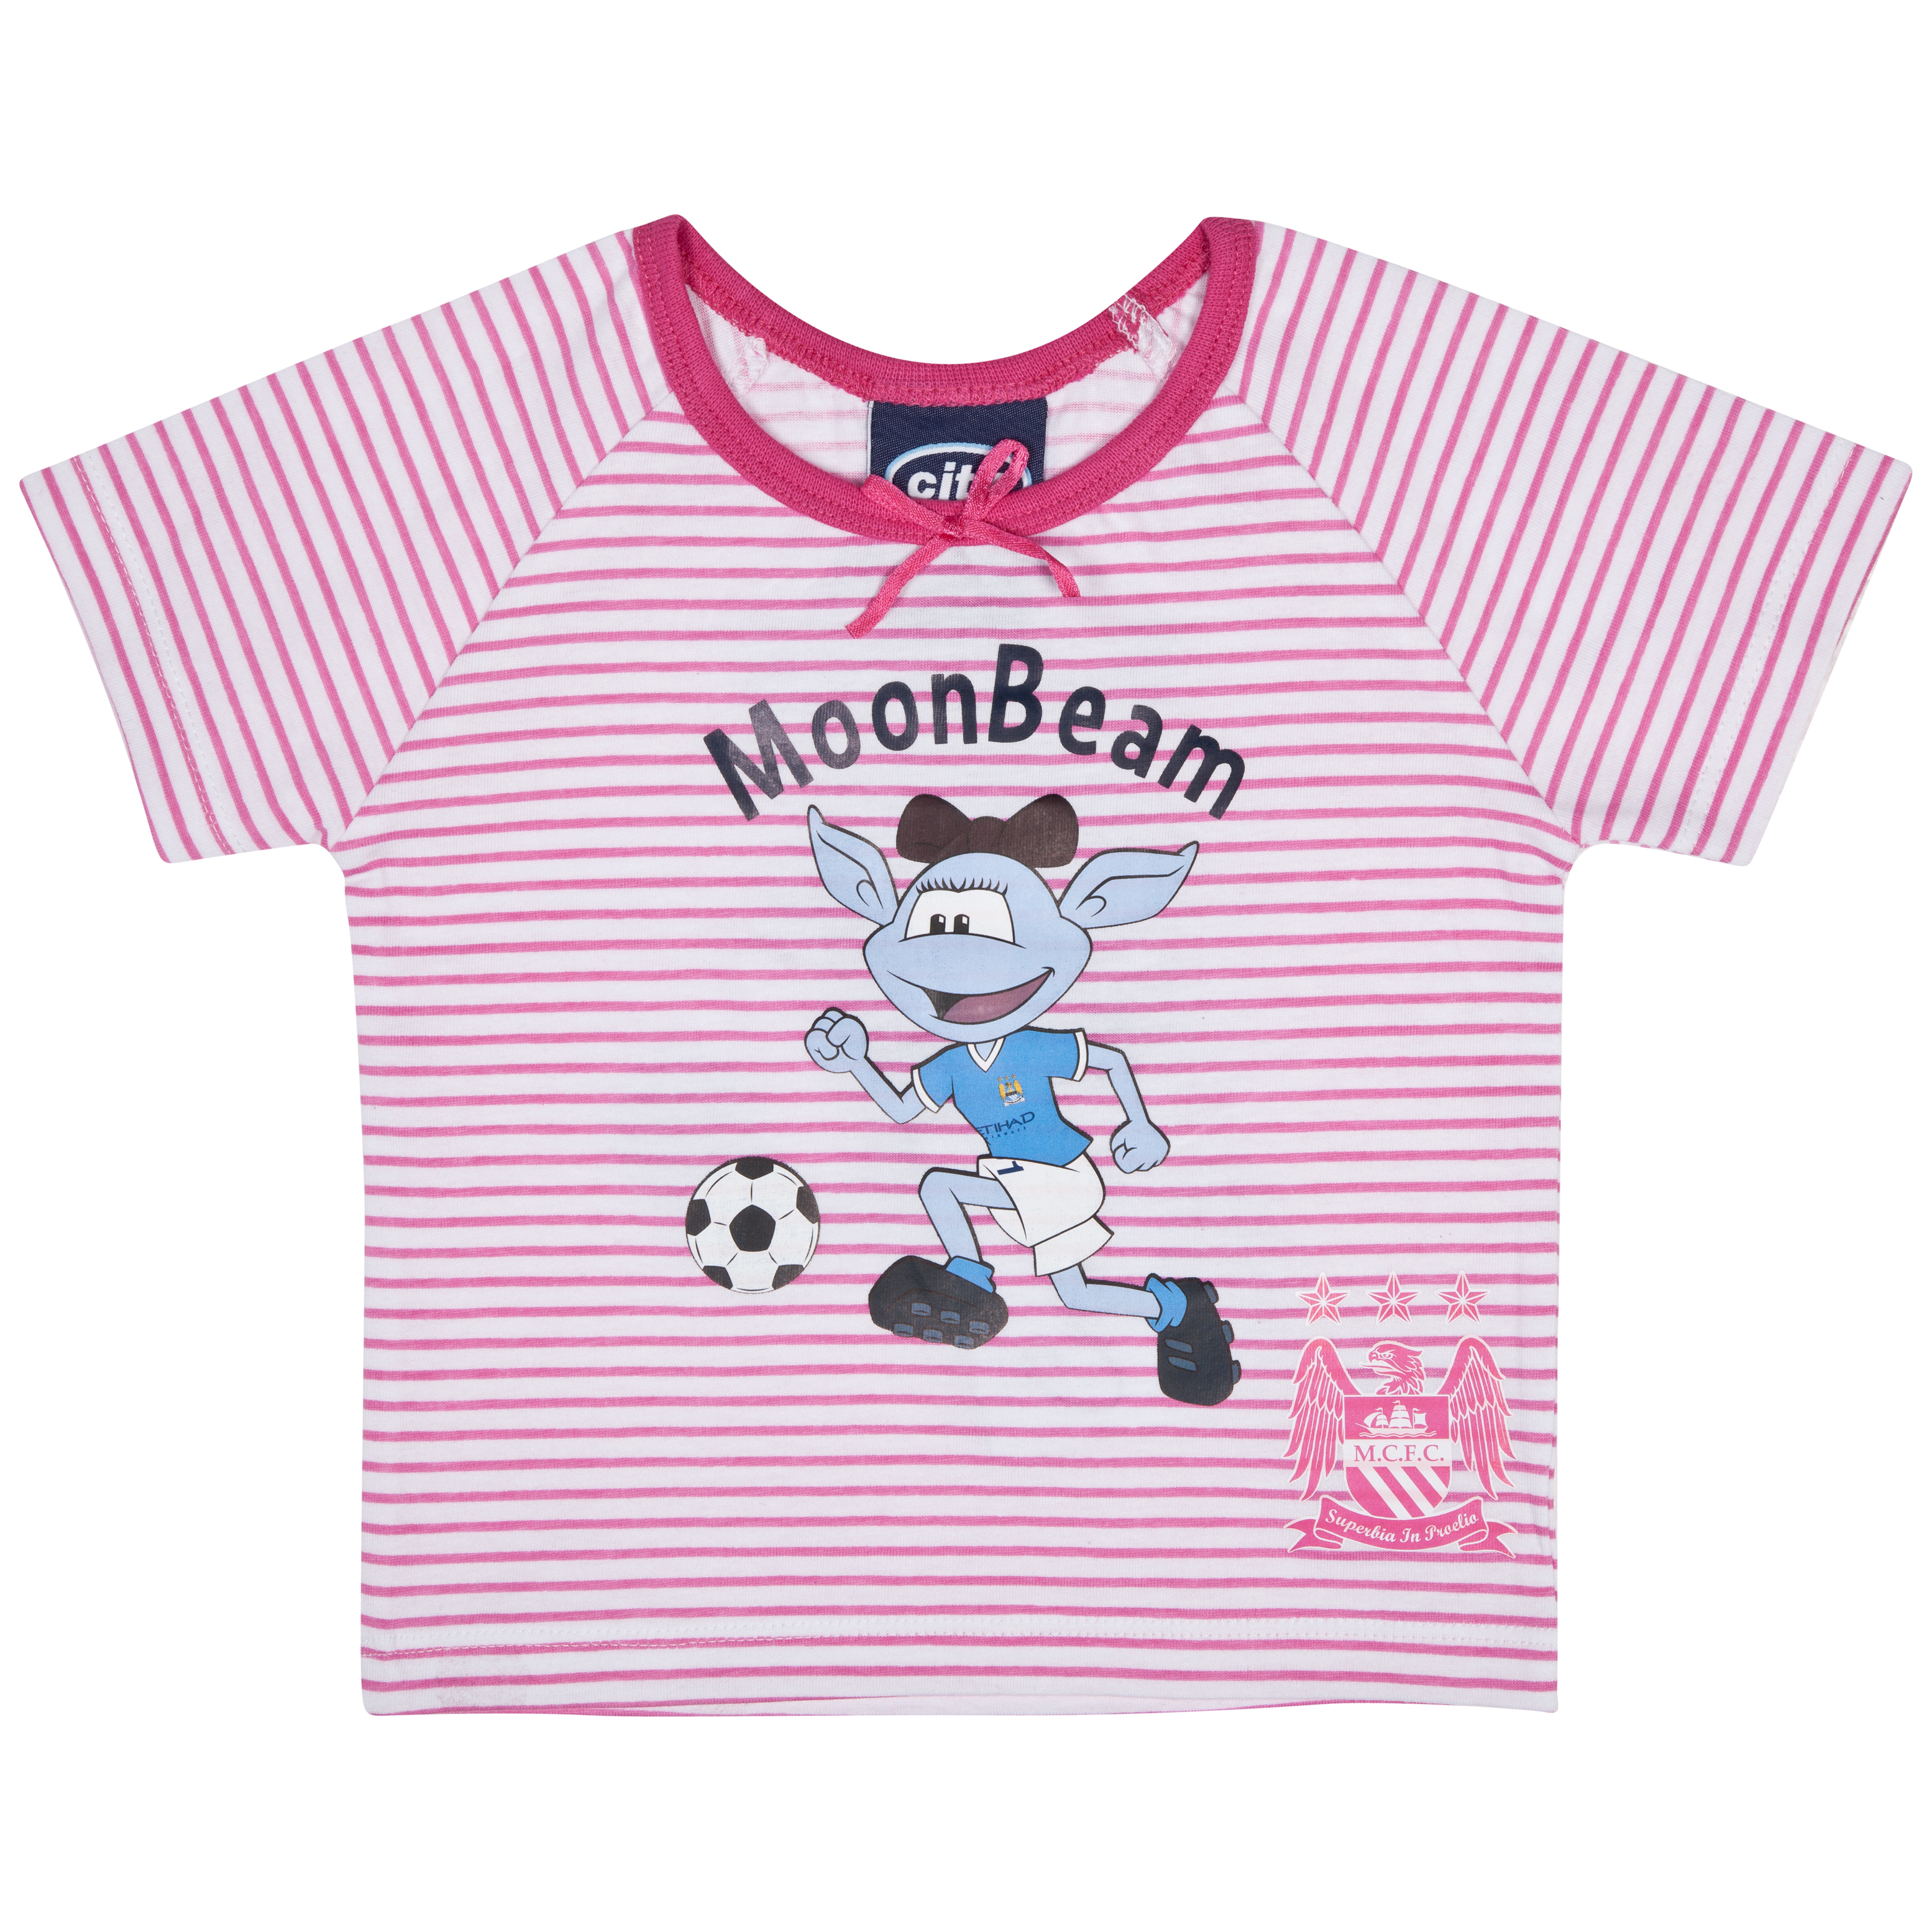 Manchester City Reverse T-Shirt - Pink/White - Baby